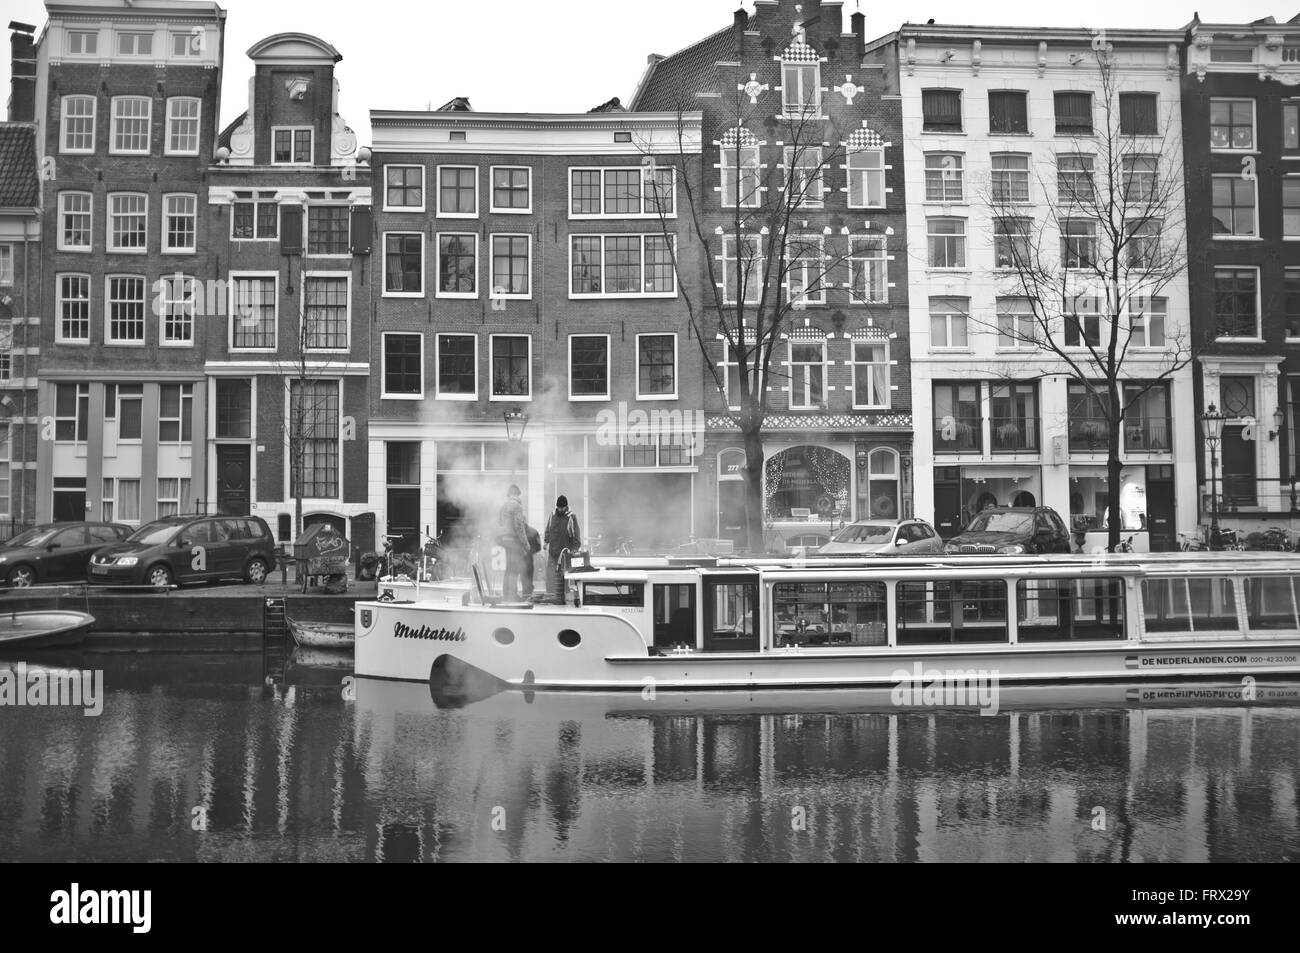 Broken Cruise Boat in Amsterdam Netherlands EU - Stock Image